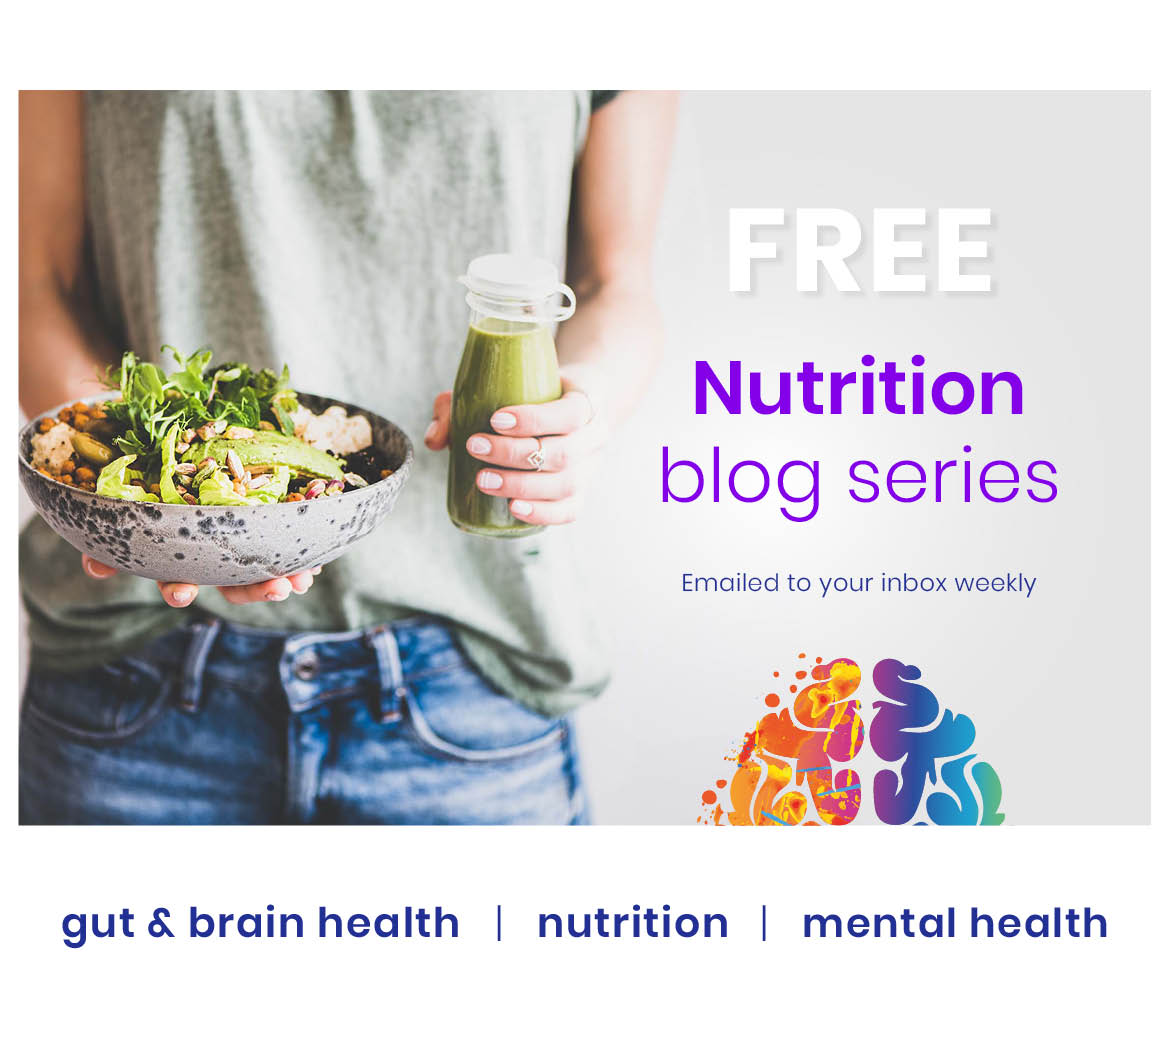 Nutrition blog series